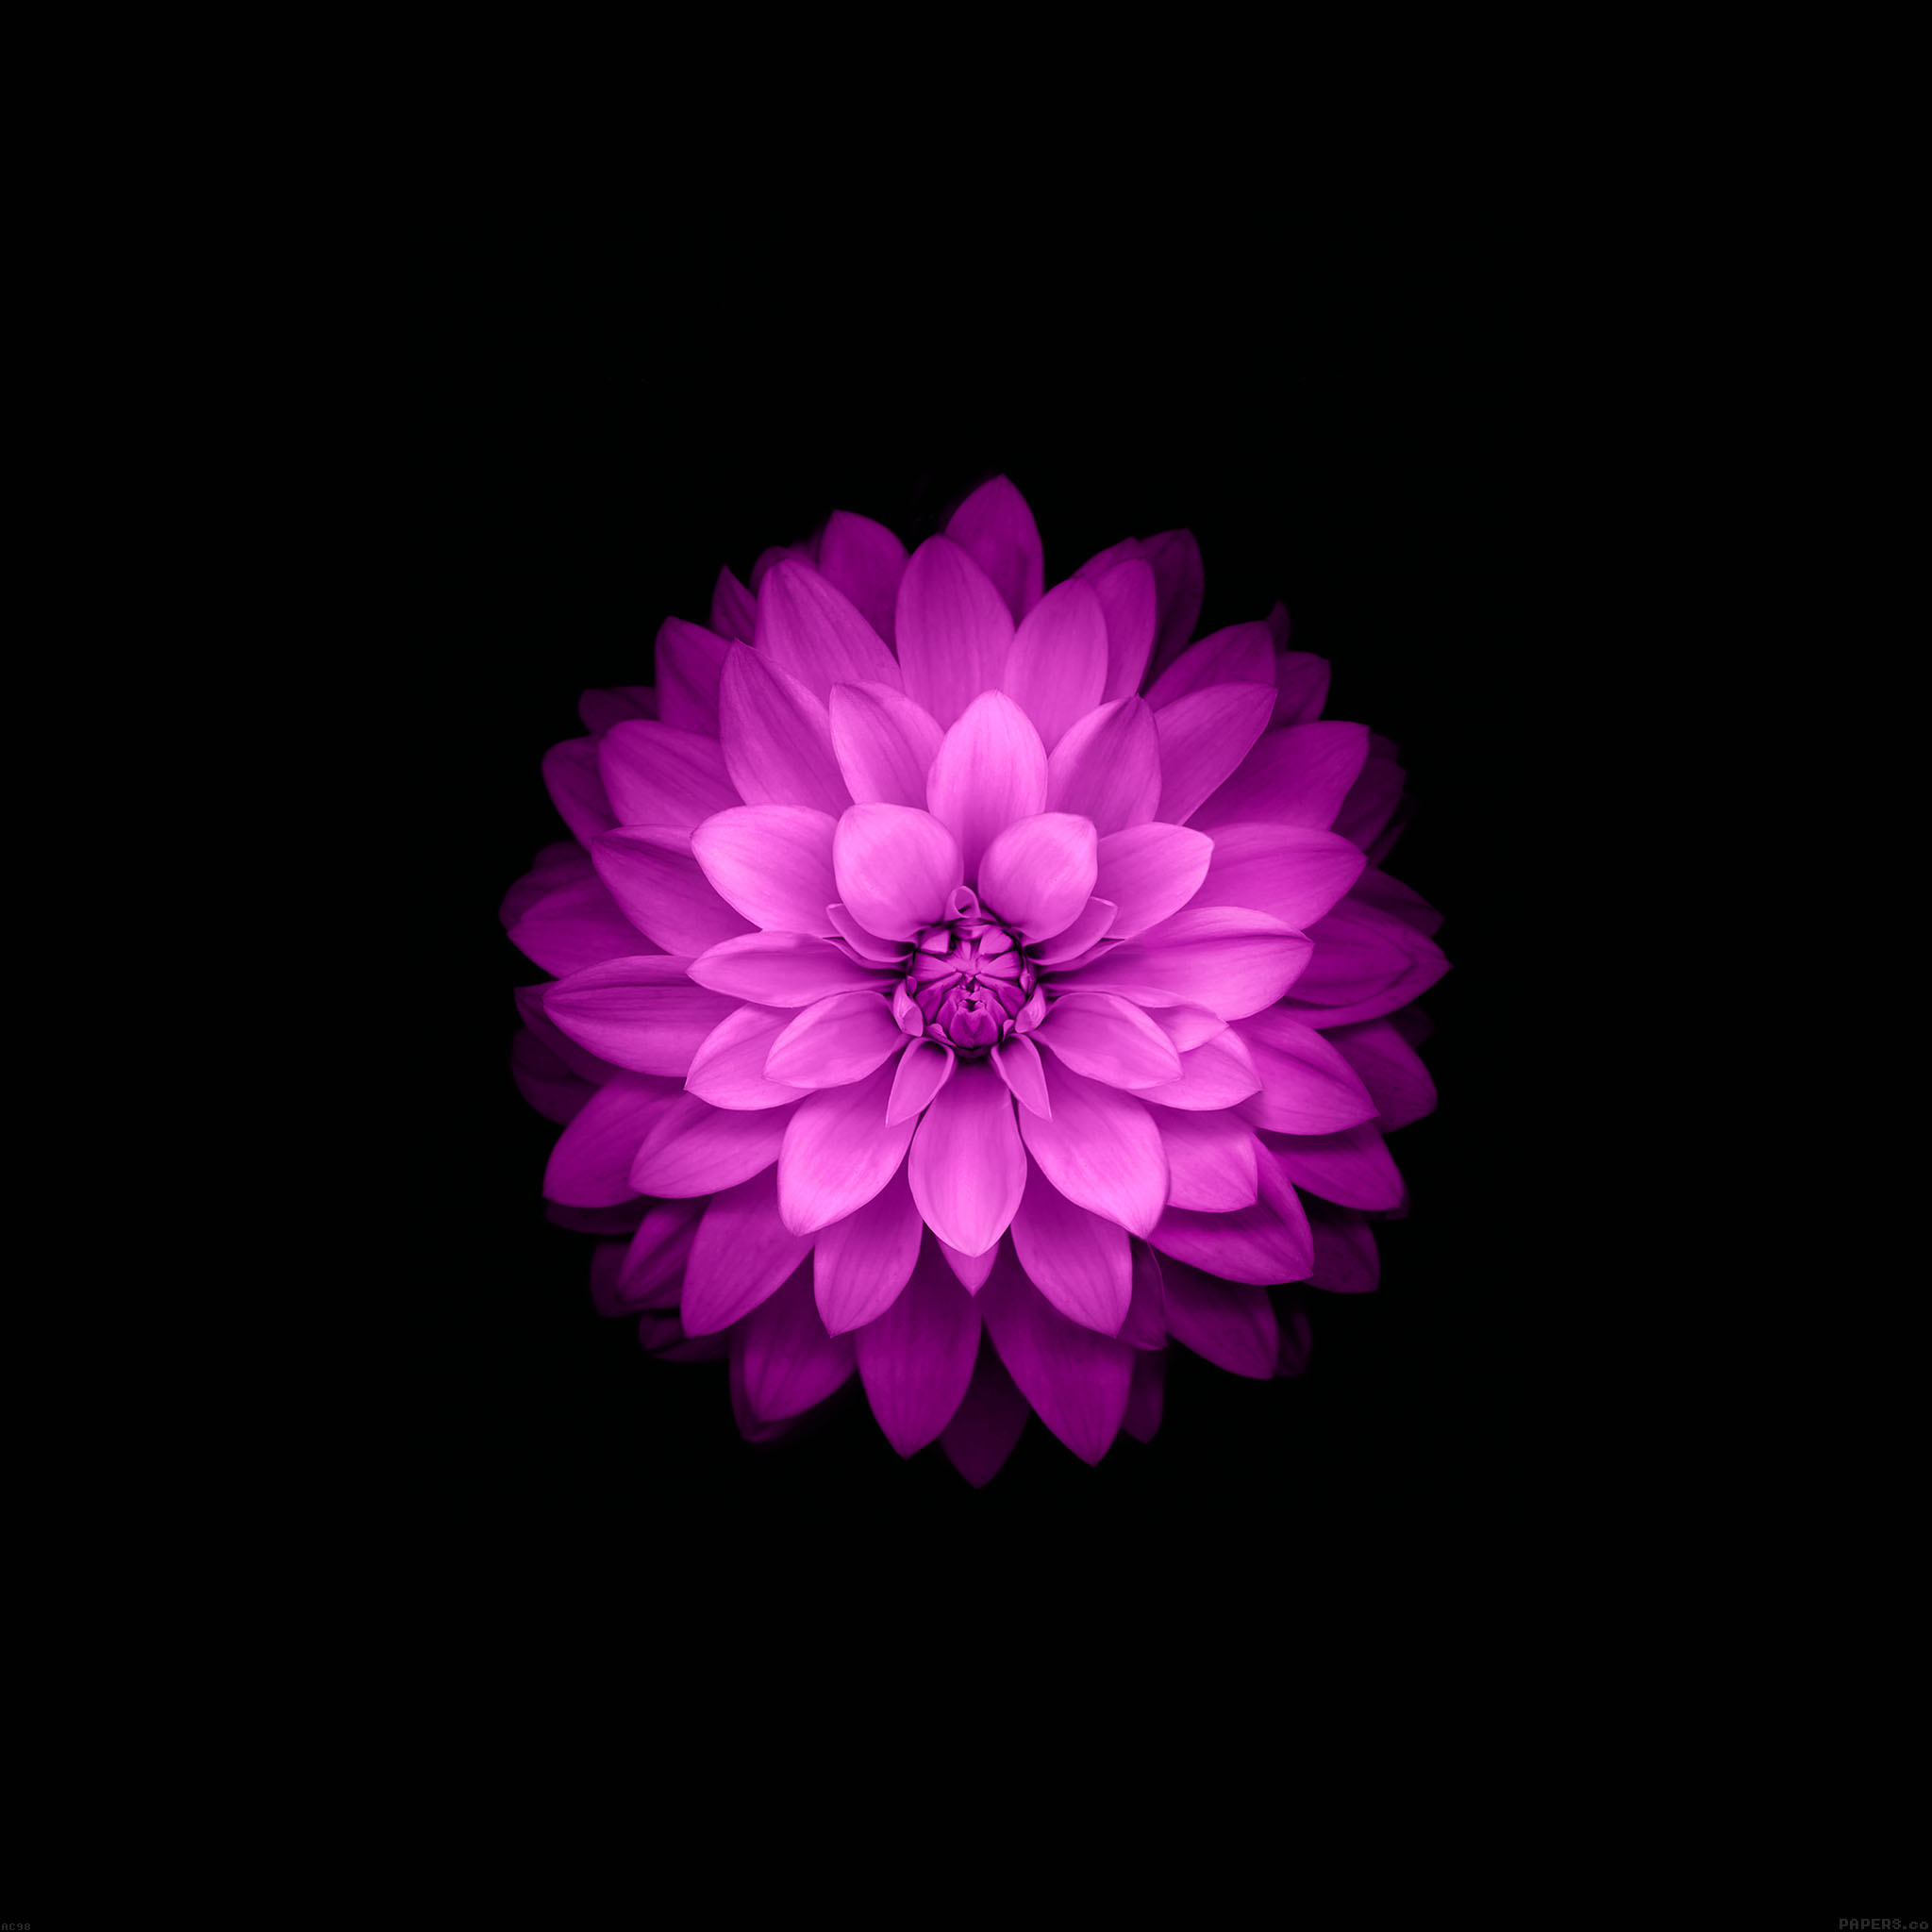 Ac98-wallpaper-apple-red-lotus-iphone6-plus-ios8-flower